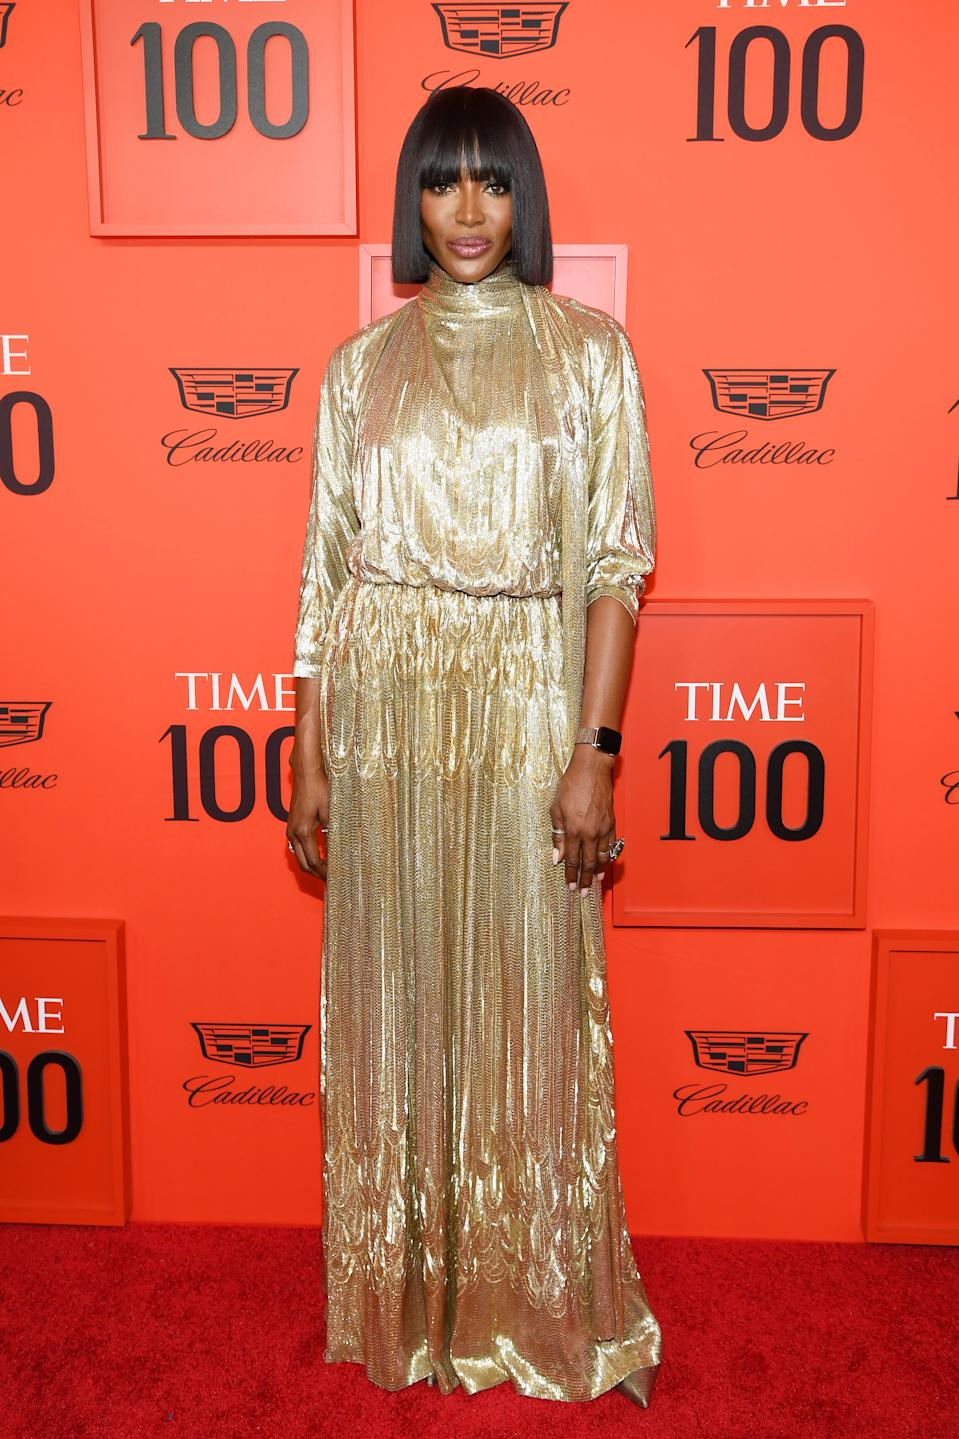 Sporting a razor sharp bob and a rare fringe, Campbell's old Hollywood glamour look is a winner. She often opts for floor-length gowns on the red carpet, but this gold Valentino gown is something special. [Getty Images]